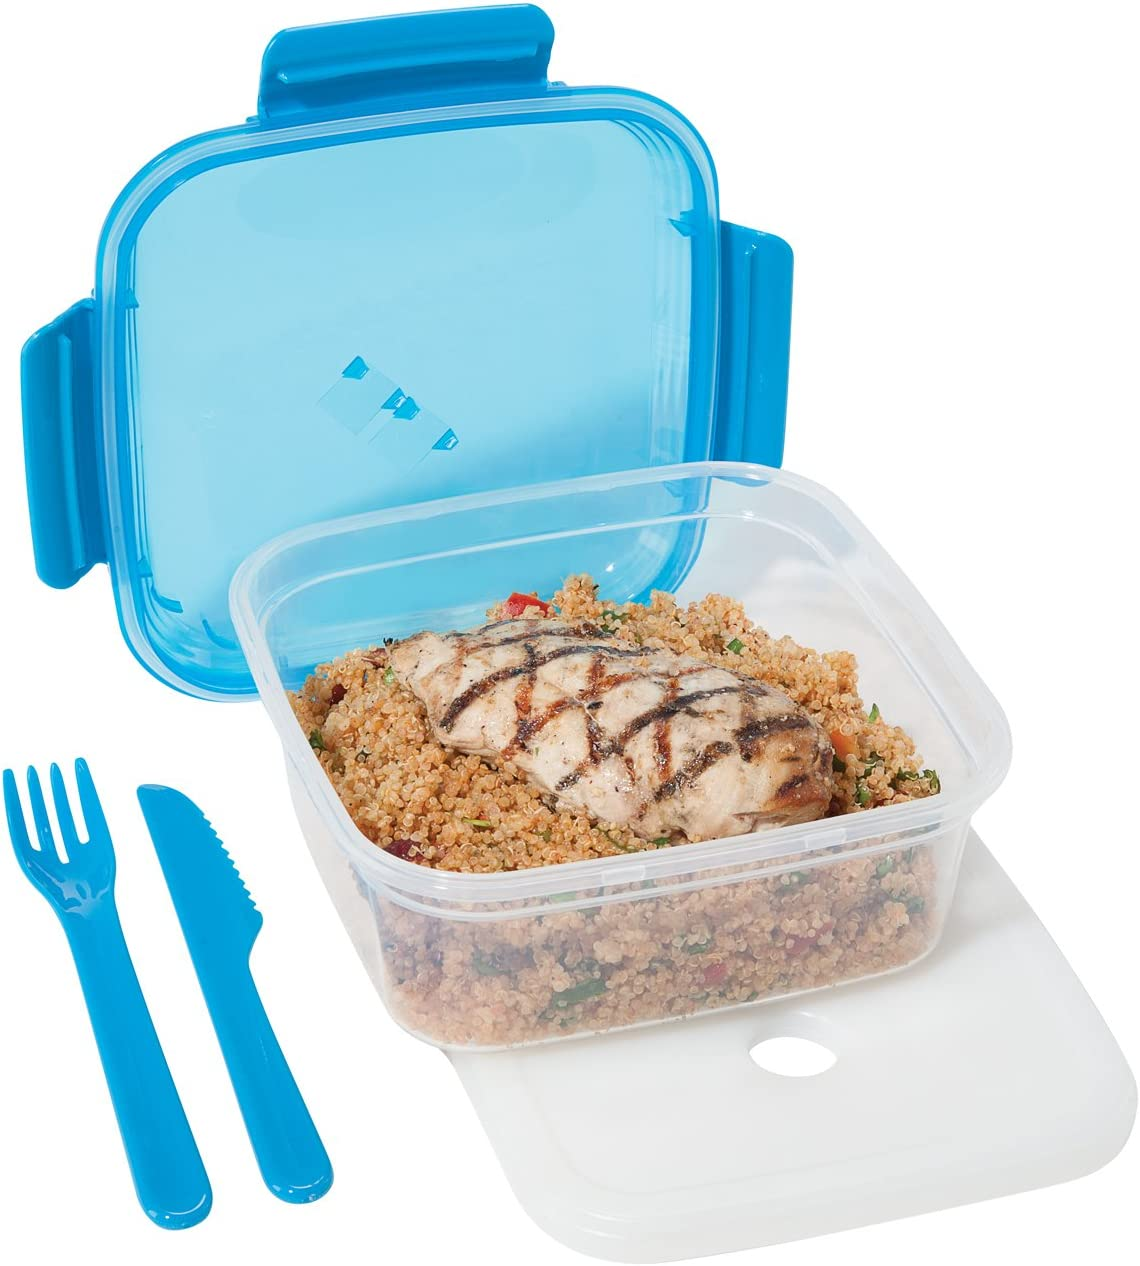 Oggi Chill To Go Food Container Lunchbox Set - Includes Knife, Fork, Bottom Container, and Removable Freezer Pack-Blue